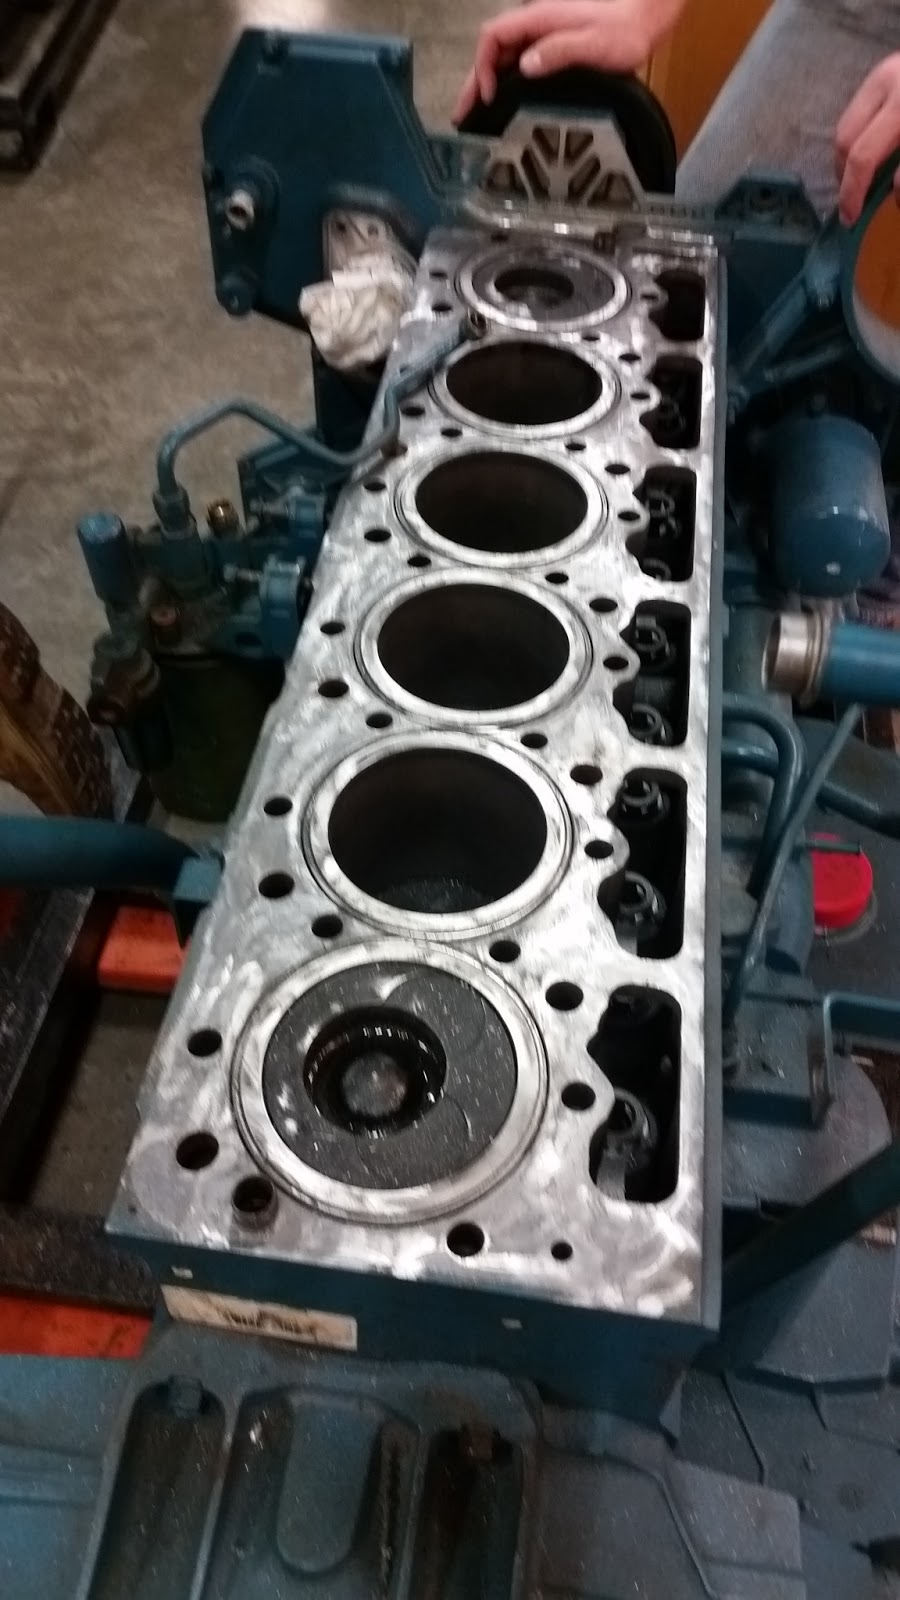 Erik Miehrig's Auto/Diesel Blog: DT466E and the Old Fashioned Service  Manuals